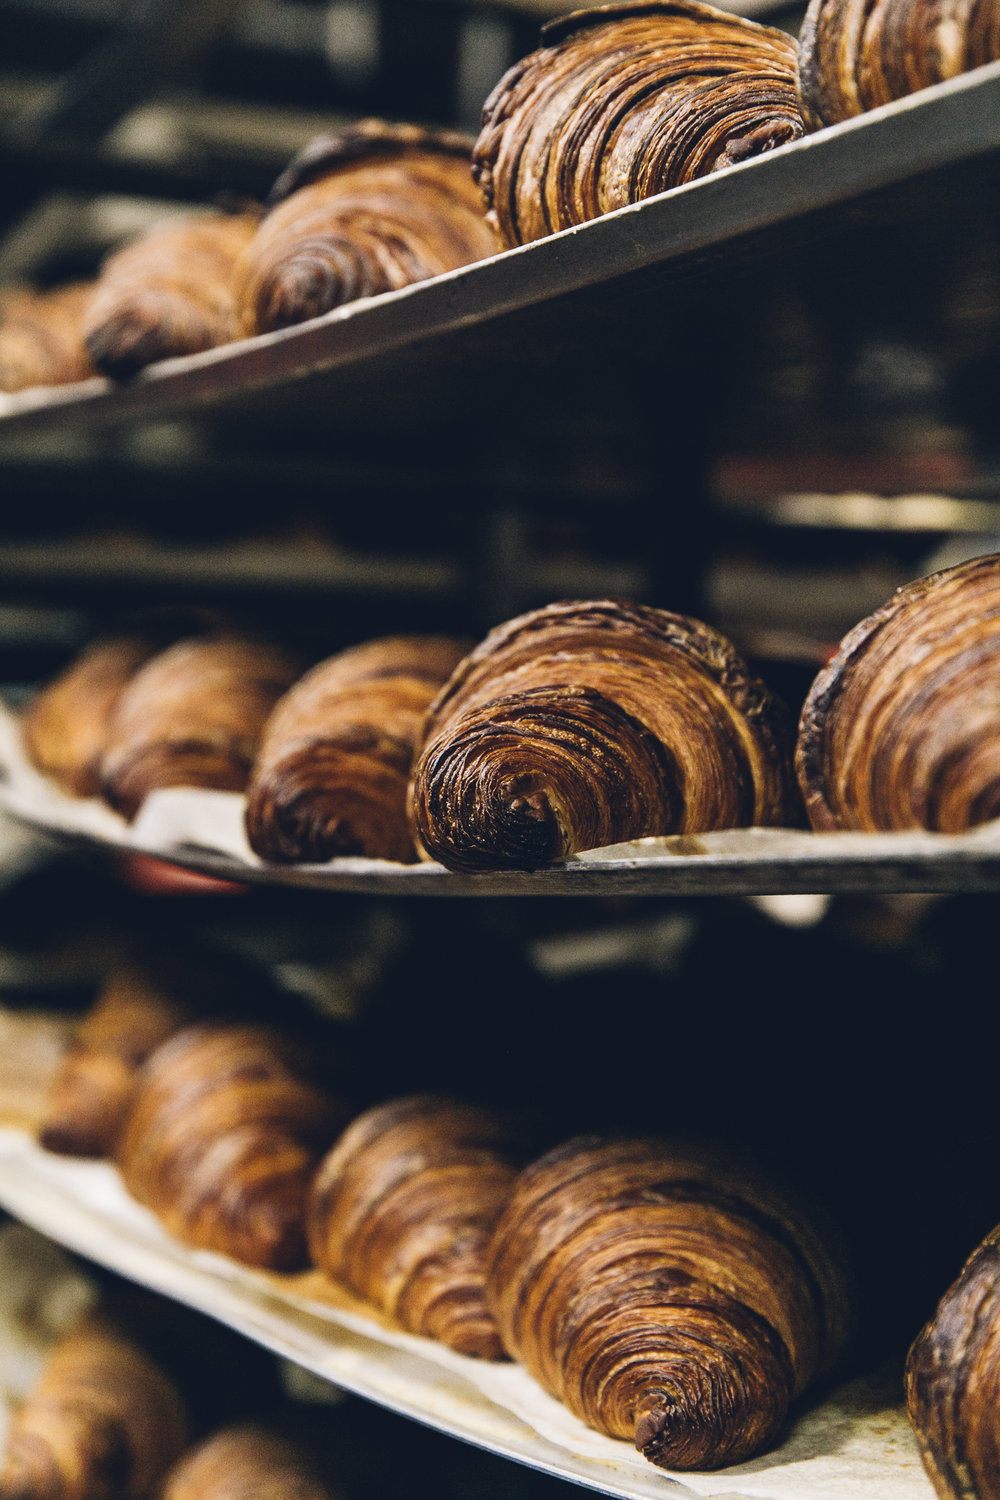 Bakery Goods - Our hands on approach to our craft ensures we maintain an innate connection with our products and our processes.